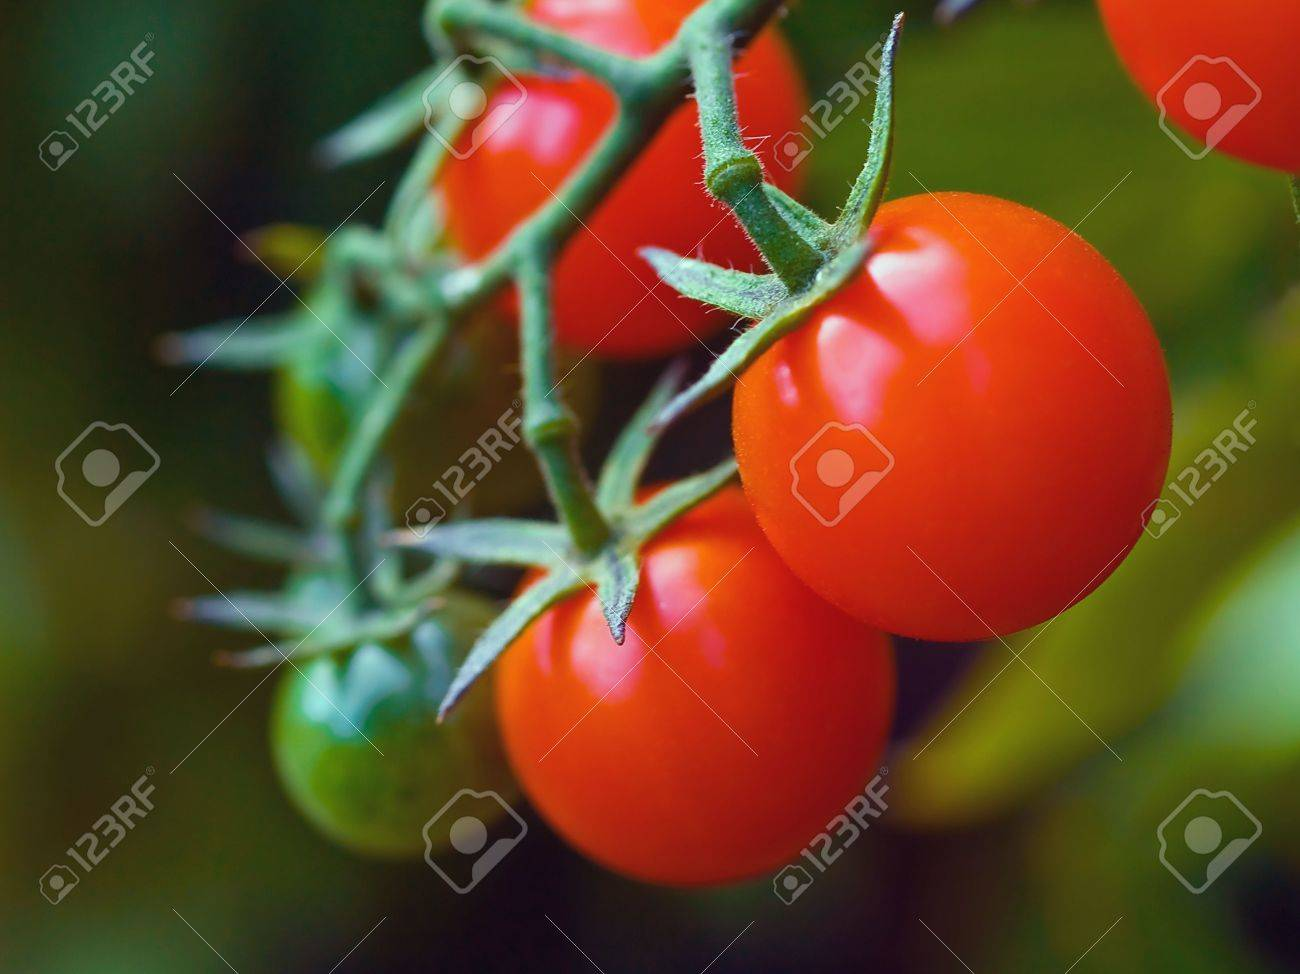 Red, ripe tomatoes still on the vine awaiting to be harvested. Stock Photo - 4915458